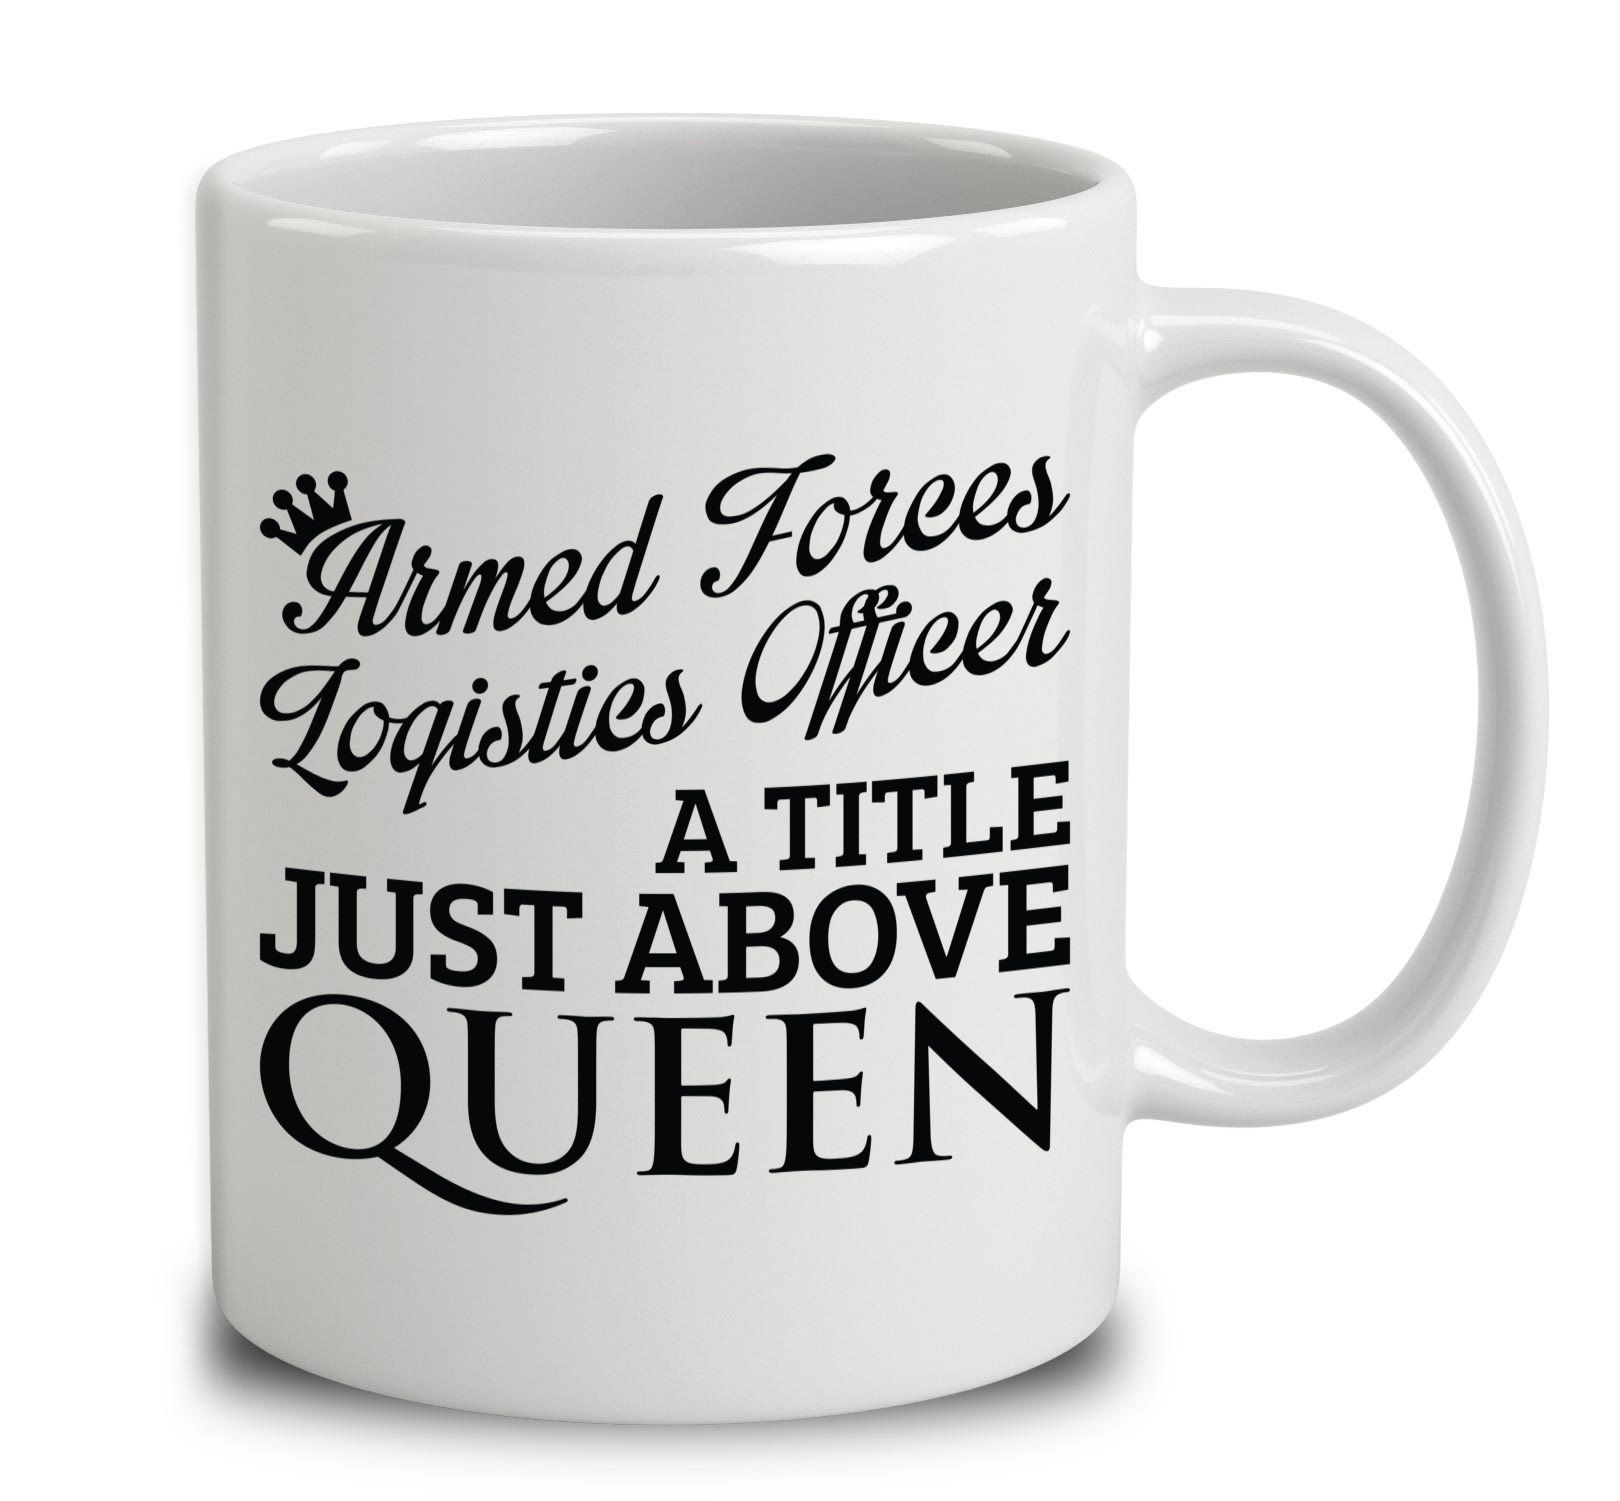 Armed Forces Logistics Officer A Title Just Above Queen  Products